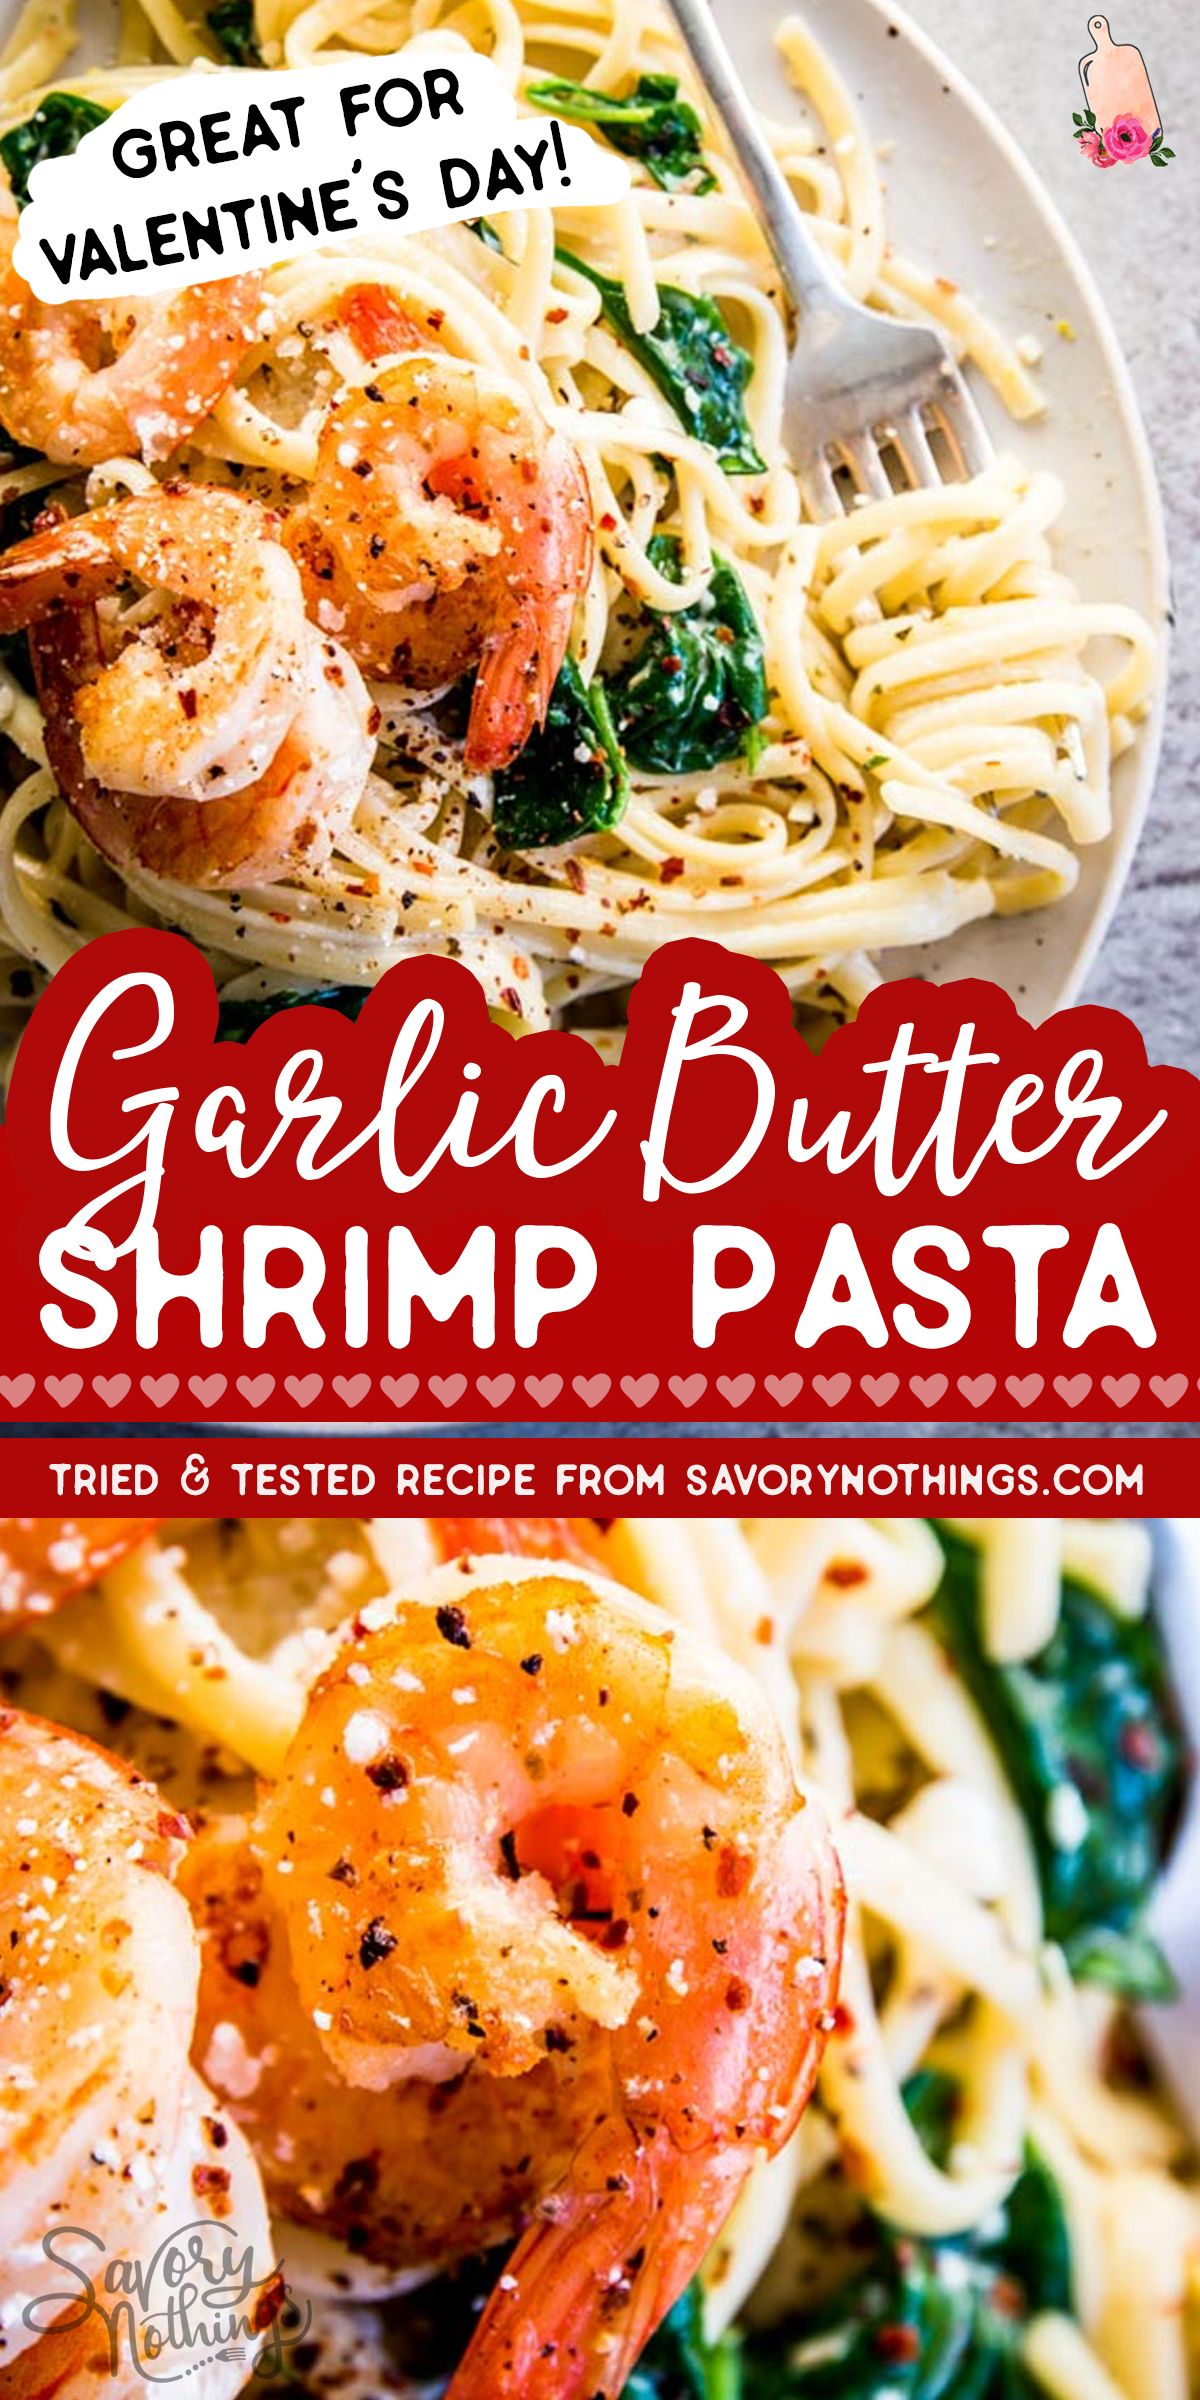 Quick And Easy Garlic Butter Shrimp Pasta In 2020 Garlic Butter Shrimp Pasta Shrimp Recipes For Dinner Night Dinner Recipes